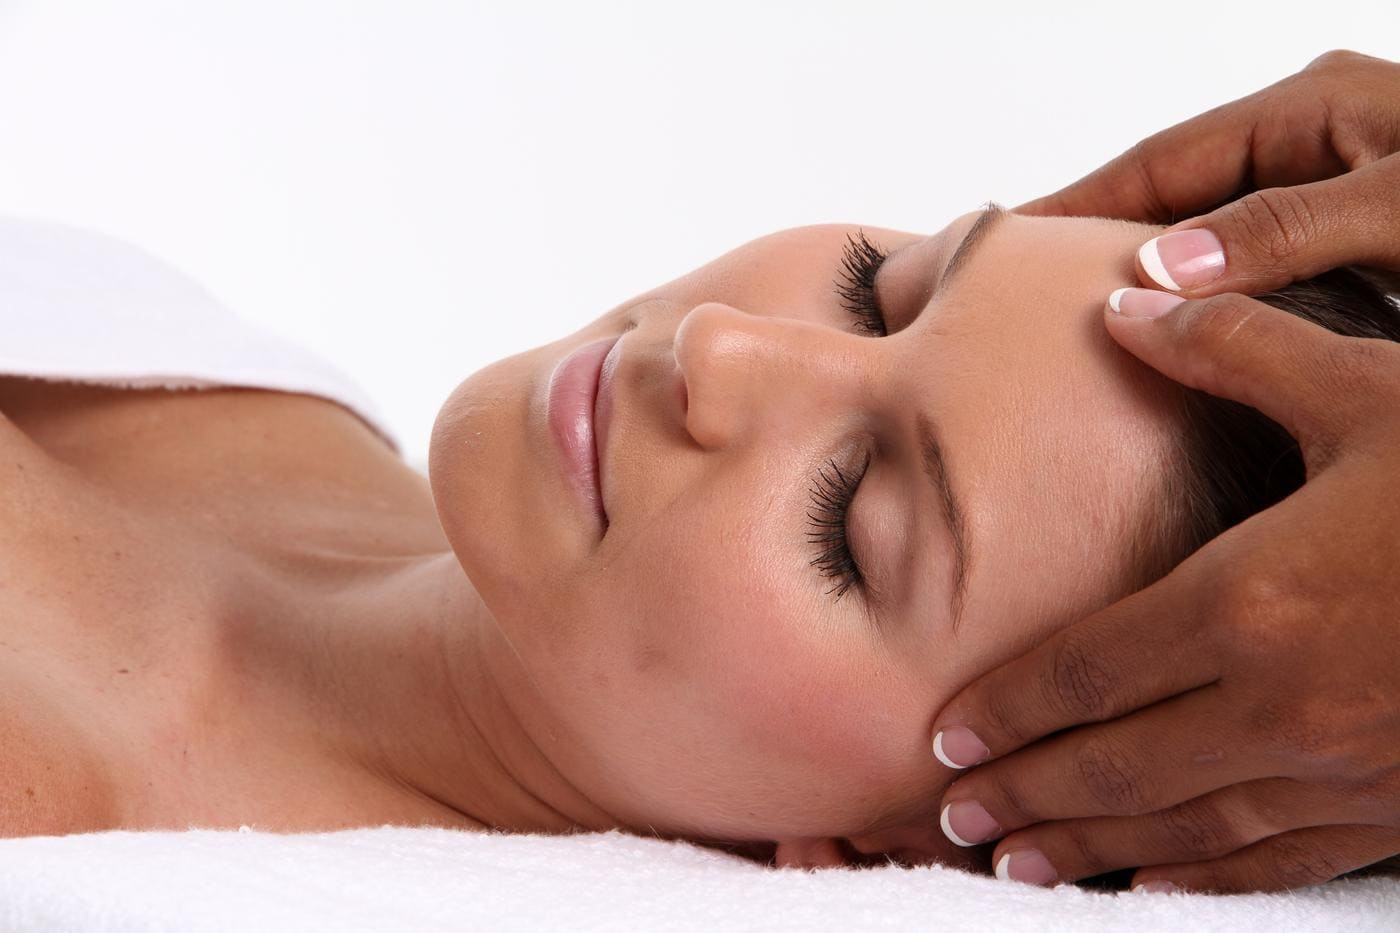 Why receive a professional massage?